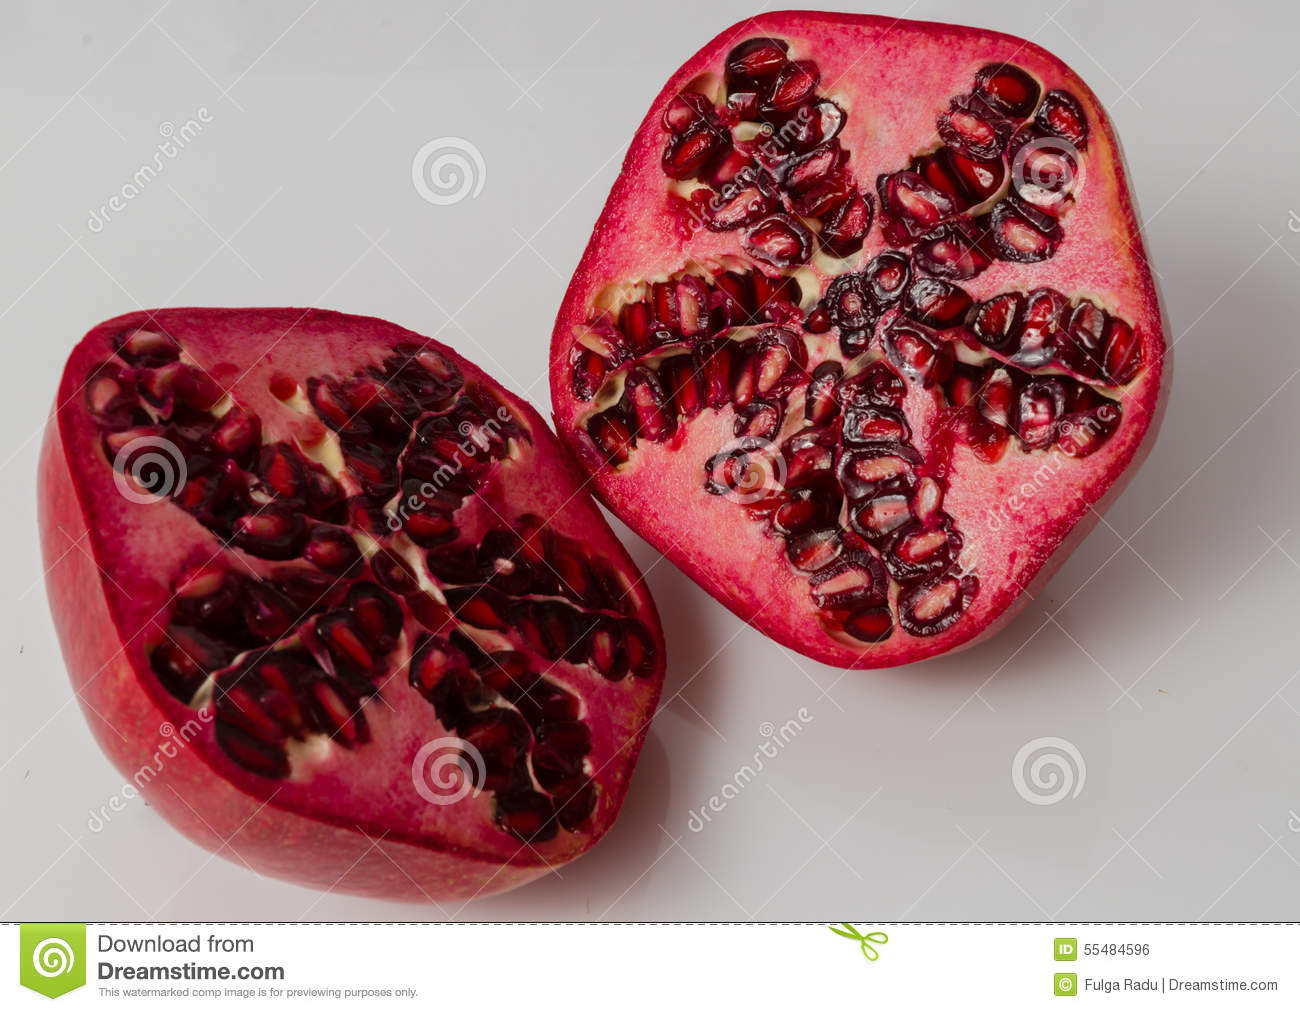 how to cut a pomegranate in half